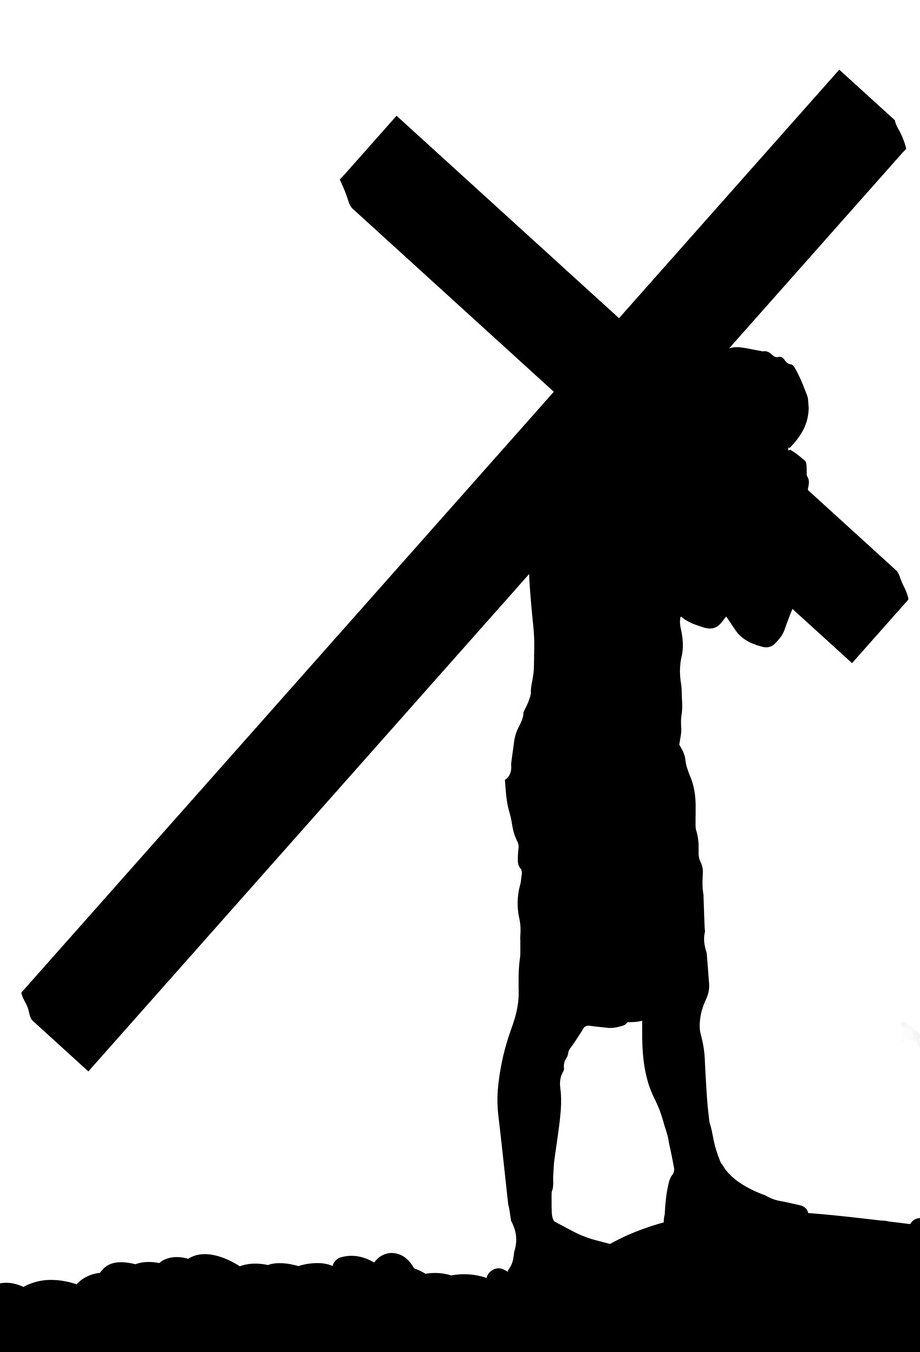 stations of the cross clipart sharefaith church websites church graphics sunday of clipart cross stations the